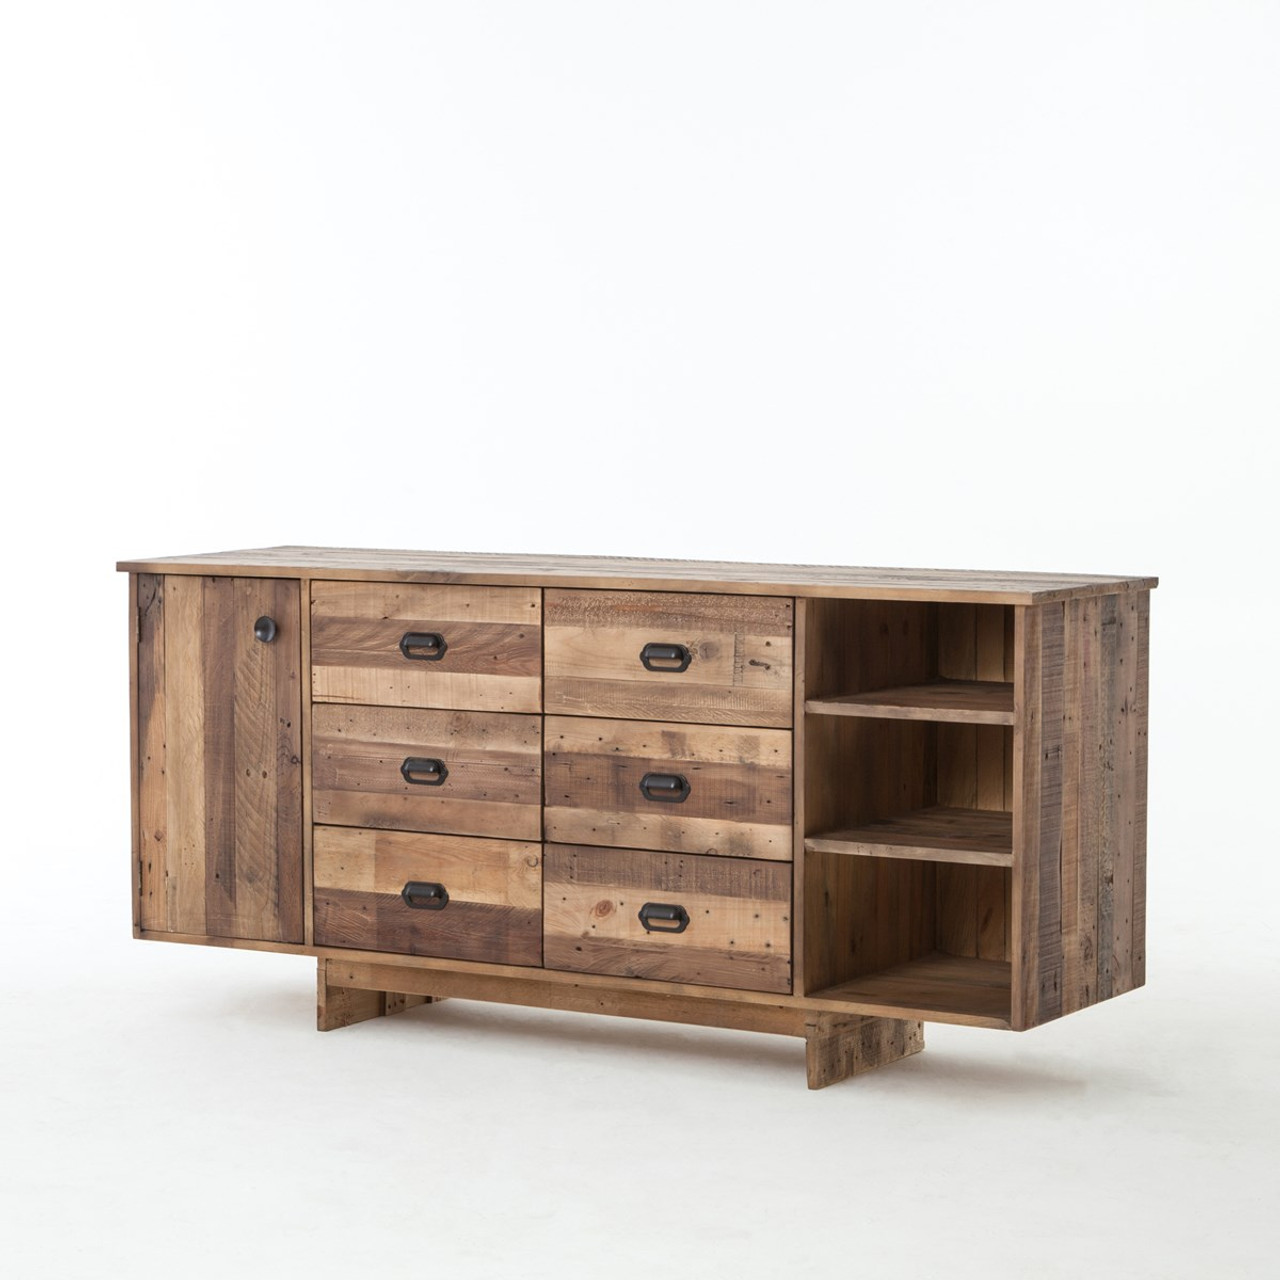 Rustic reclaimed wood console sofa tables zin home angora buffet sideboard 74 geotapseo Gallery